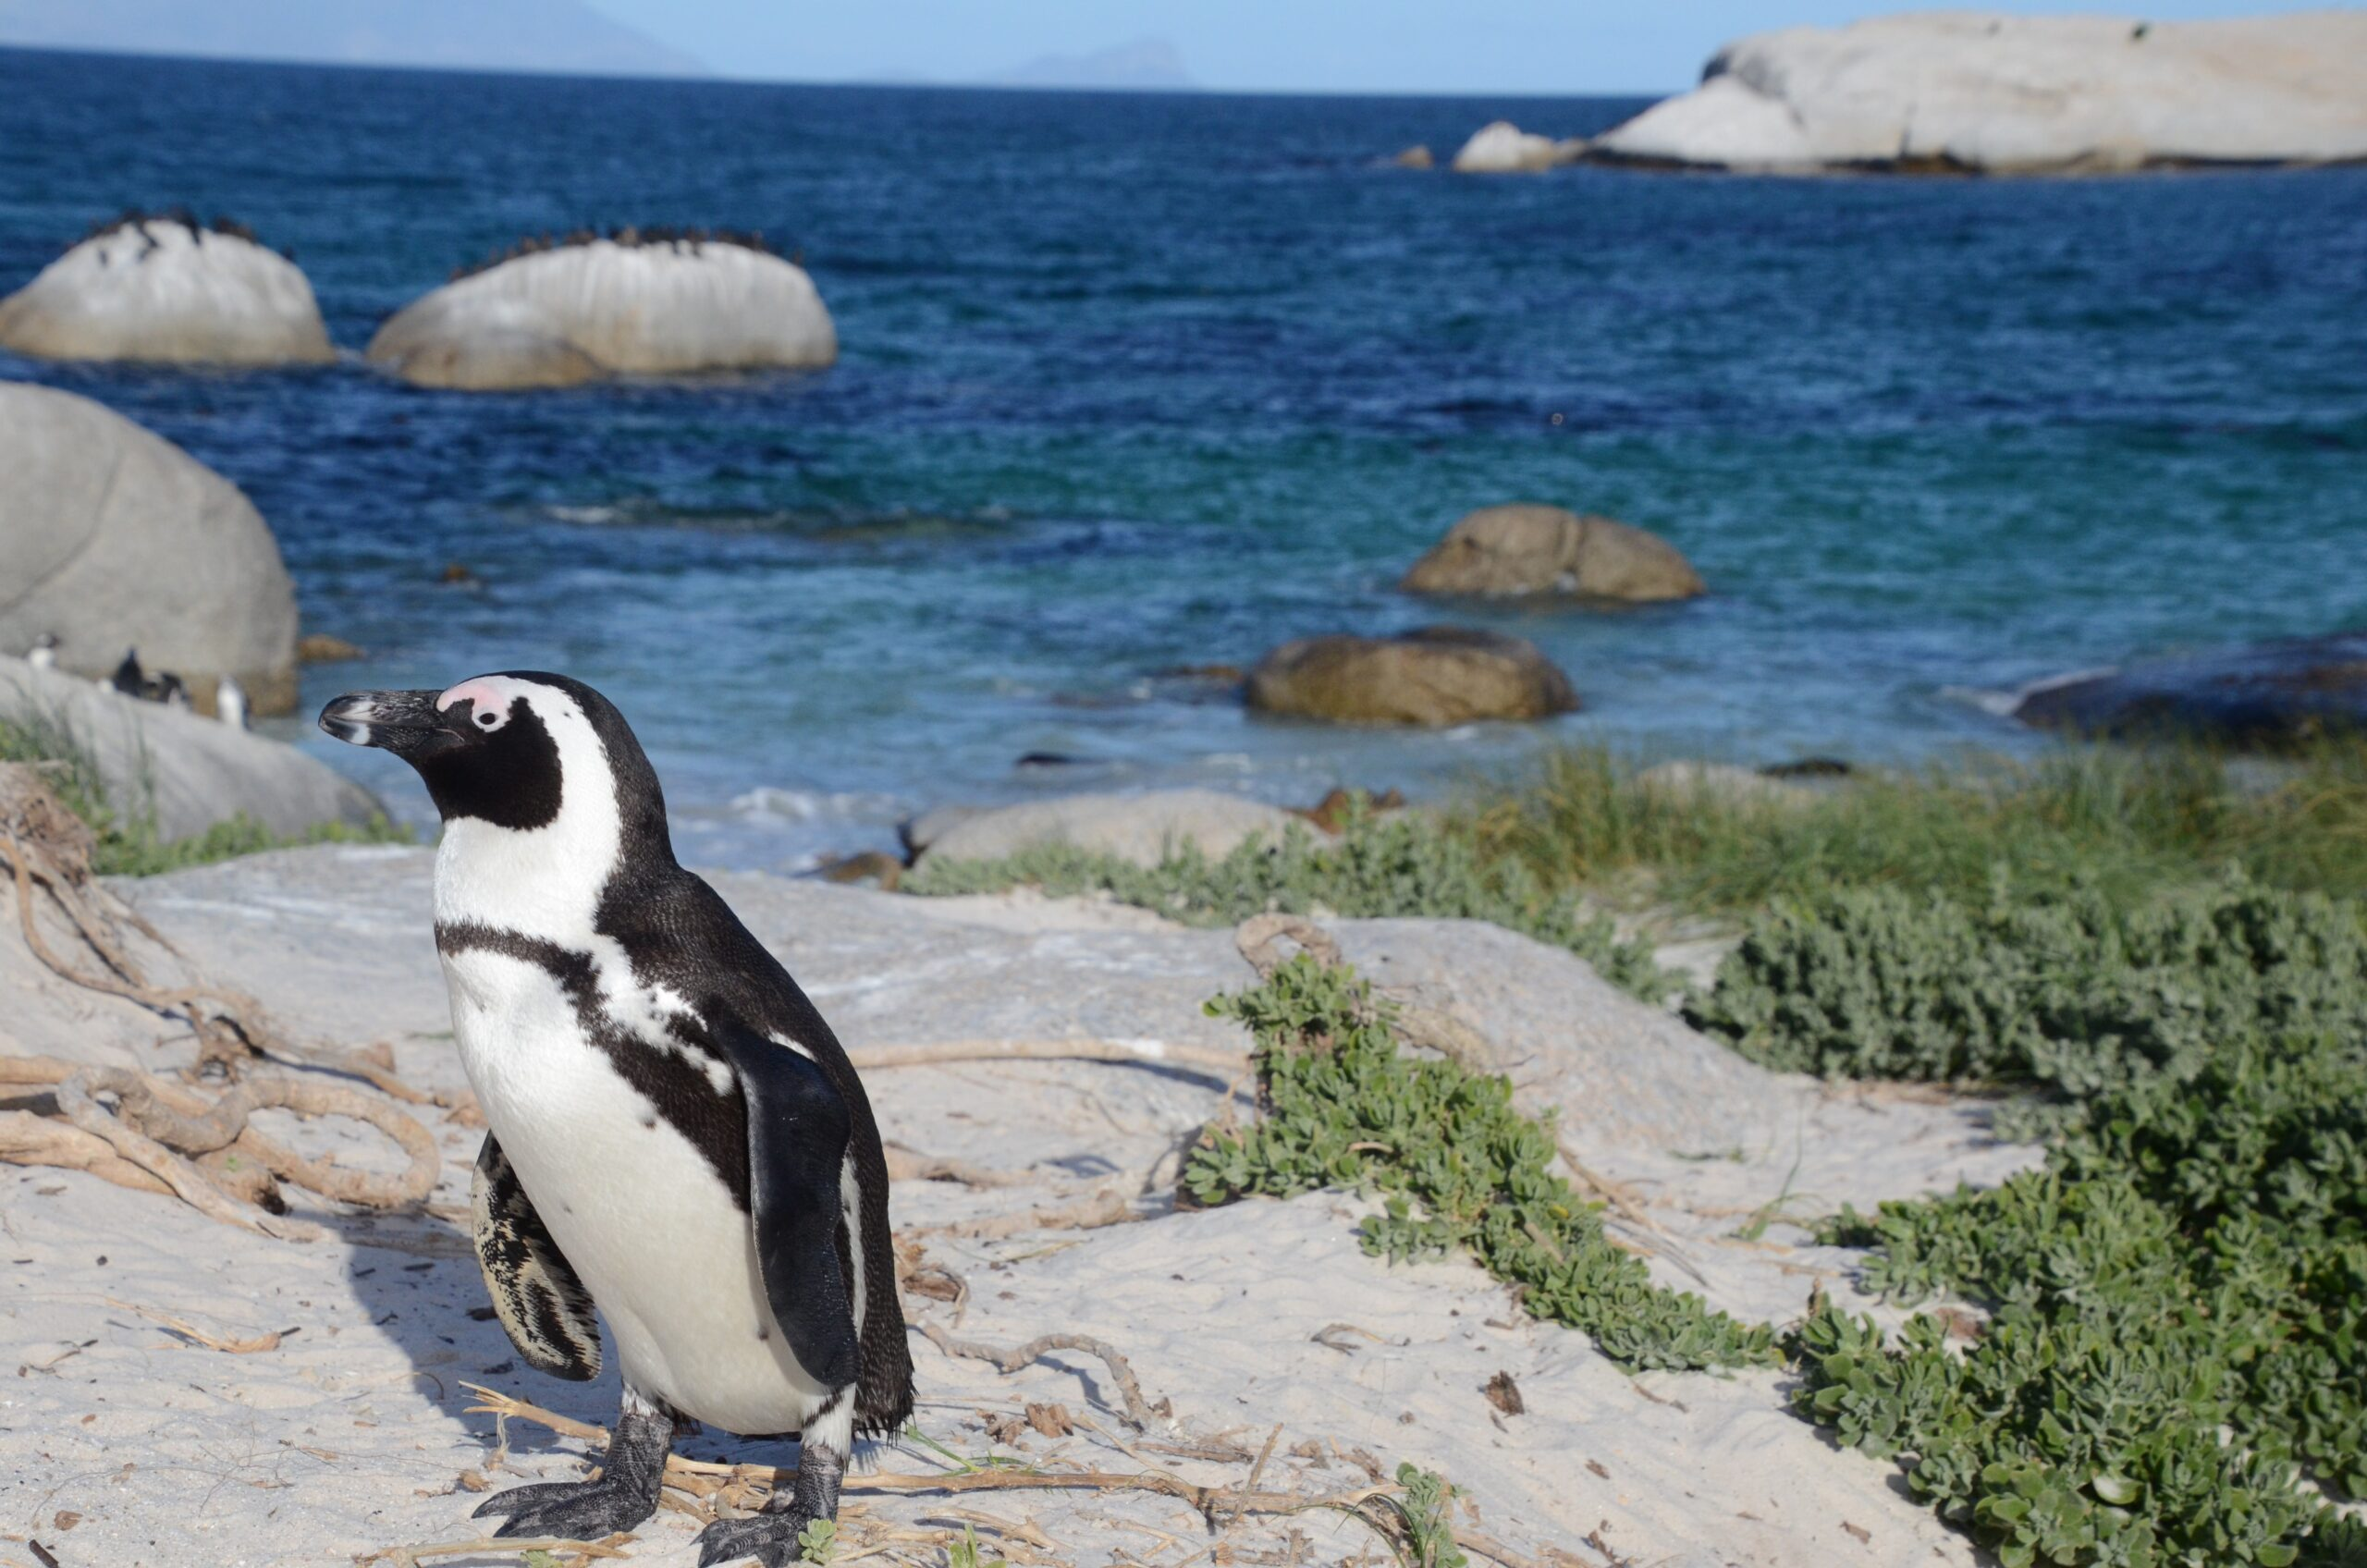 25th April 2021 is World Penguin Day #WorldPenguinDay